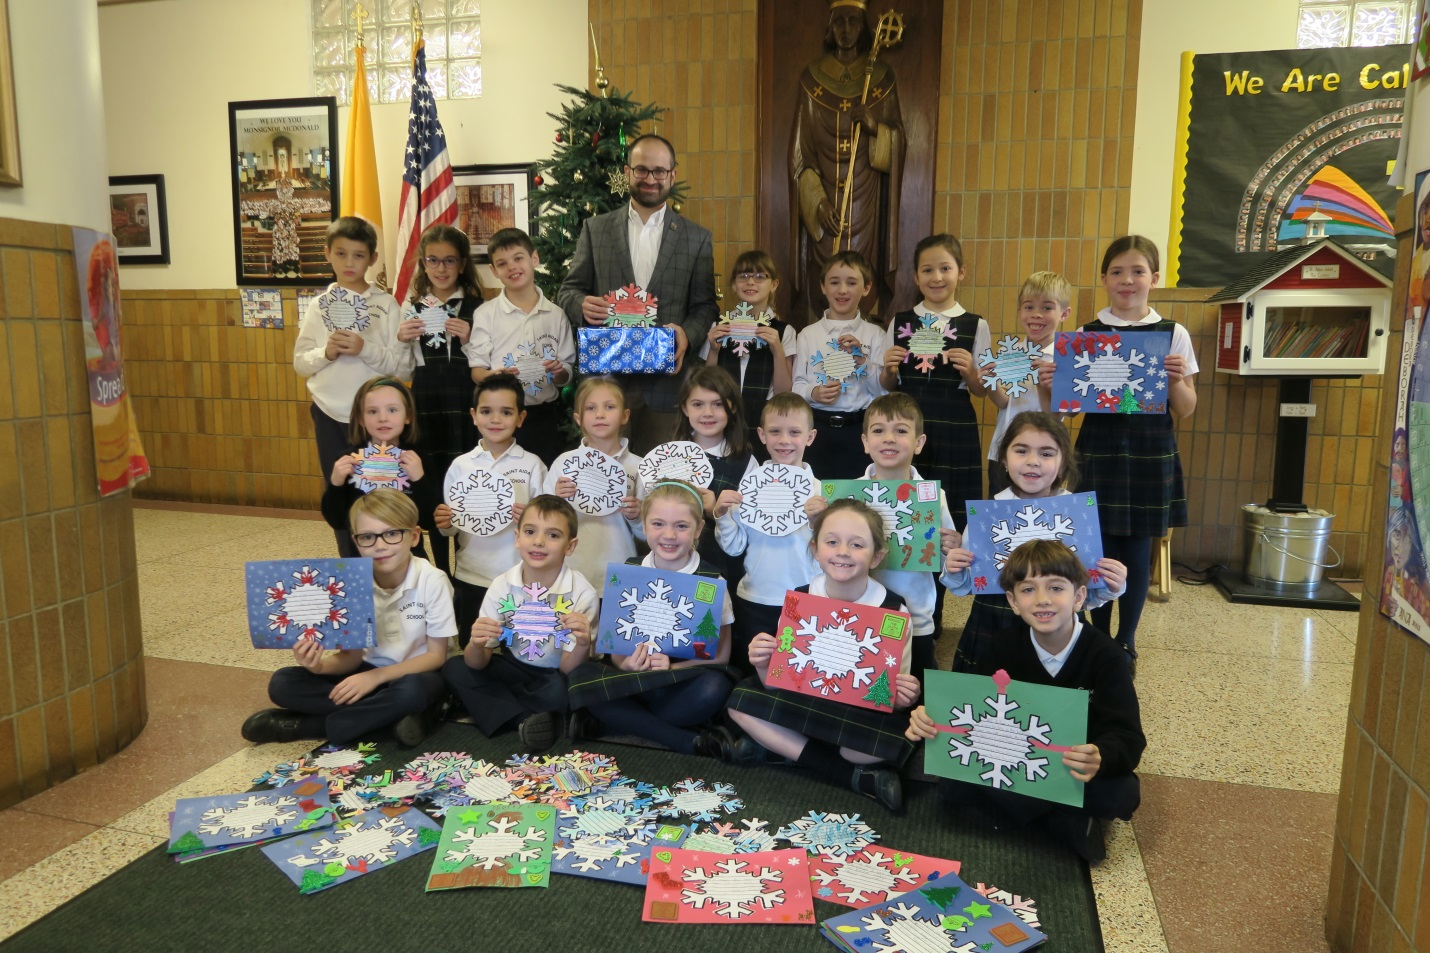 Assemblyman Ed Ra (R-Franklin Square) with students from St. Aidan's lower school who participated in his annual Snowflakes for Seniors program to spread holiday cheer to local senior citizens.